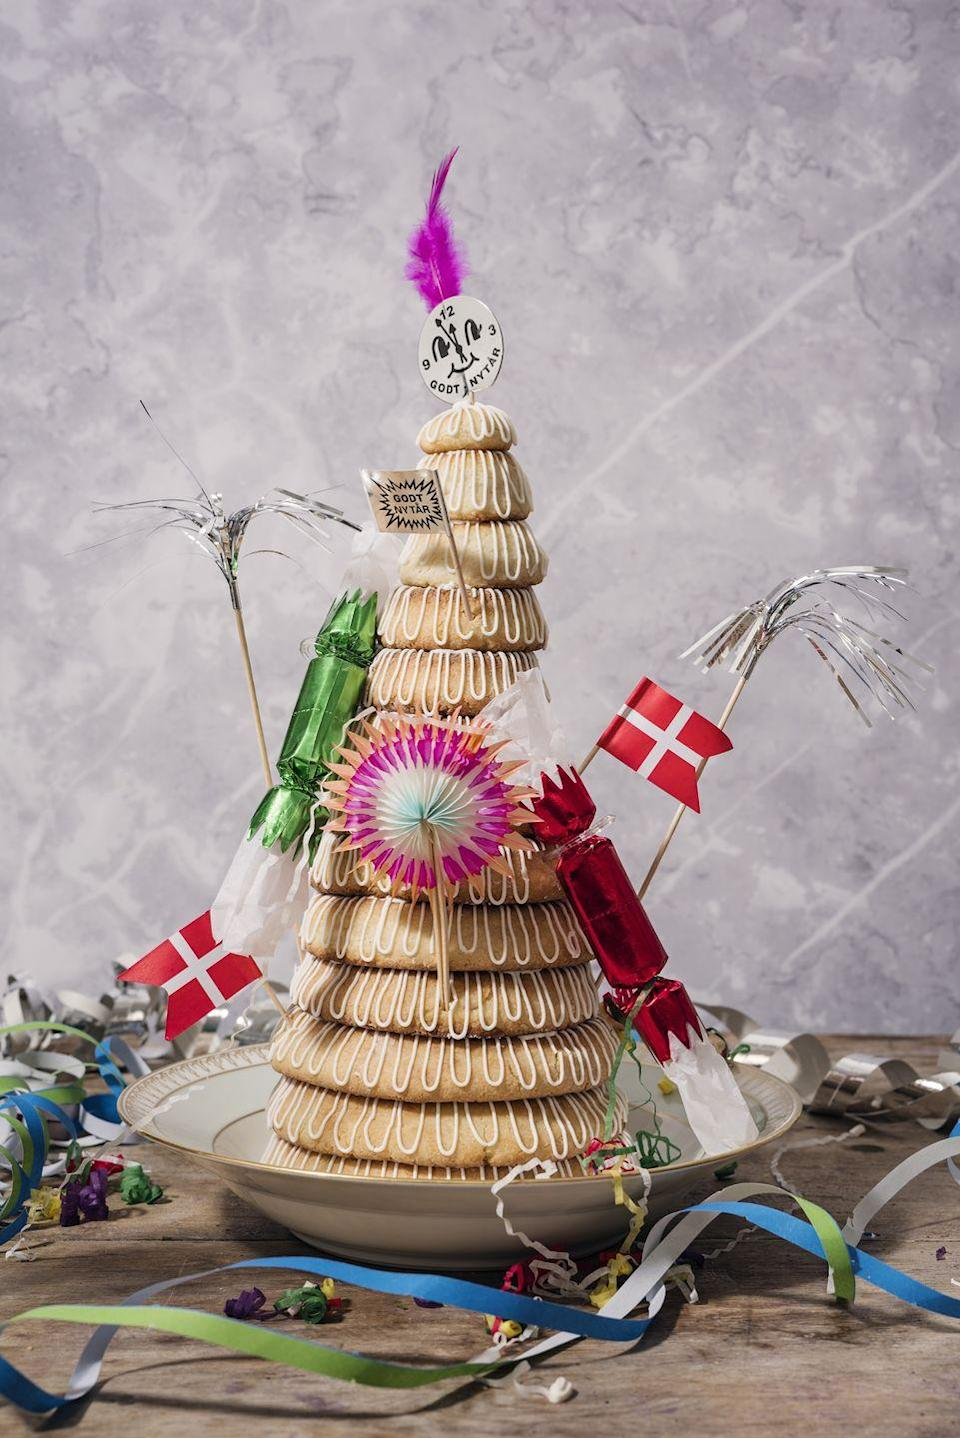 "<p>According to CNN, Kransekage is <a href=""https://www.cnn.com/travel/article/new-years-food-traditions/index.html"" rel=""nofollow noopener"" target=""_blank"" data-ylk=""slk:a wreath cake"" class=""link rapid-noclick-resp"">a wreath cake</a> tower that consists of multiple rings of cake piled on top of one another. The desserts are a part of Norway and Denmark's New Year's Eve traditions. The cake is made with marzipan, is often build around a bottle of wine or Aquavit in the center, and can be decorated for any special occasion. </p><p><a class=""link rapid-noclick-resp"" href=""https://www.amazon.com/MARZIPAN-ROLL-Pack-of-3/dp/B01MXSHUFW/?tag=syn-yahoo-20&ascsubtag=%5Bartid%7C10063.g.34903192%5Bsrc%7Cyahoo-us"" rel=""nofollow noopener"" target=""_blank"" data-ylk=""slk:BUY MARZIPAN"">BUY MARZIPAN</a> </p>"